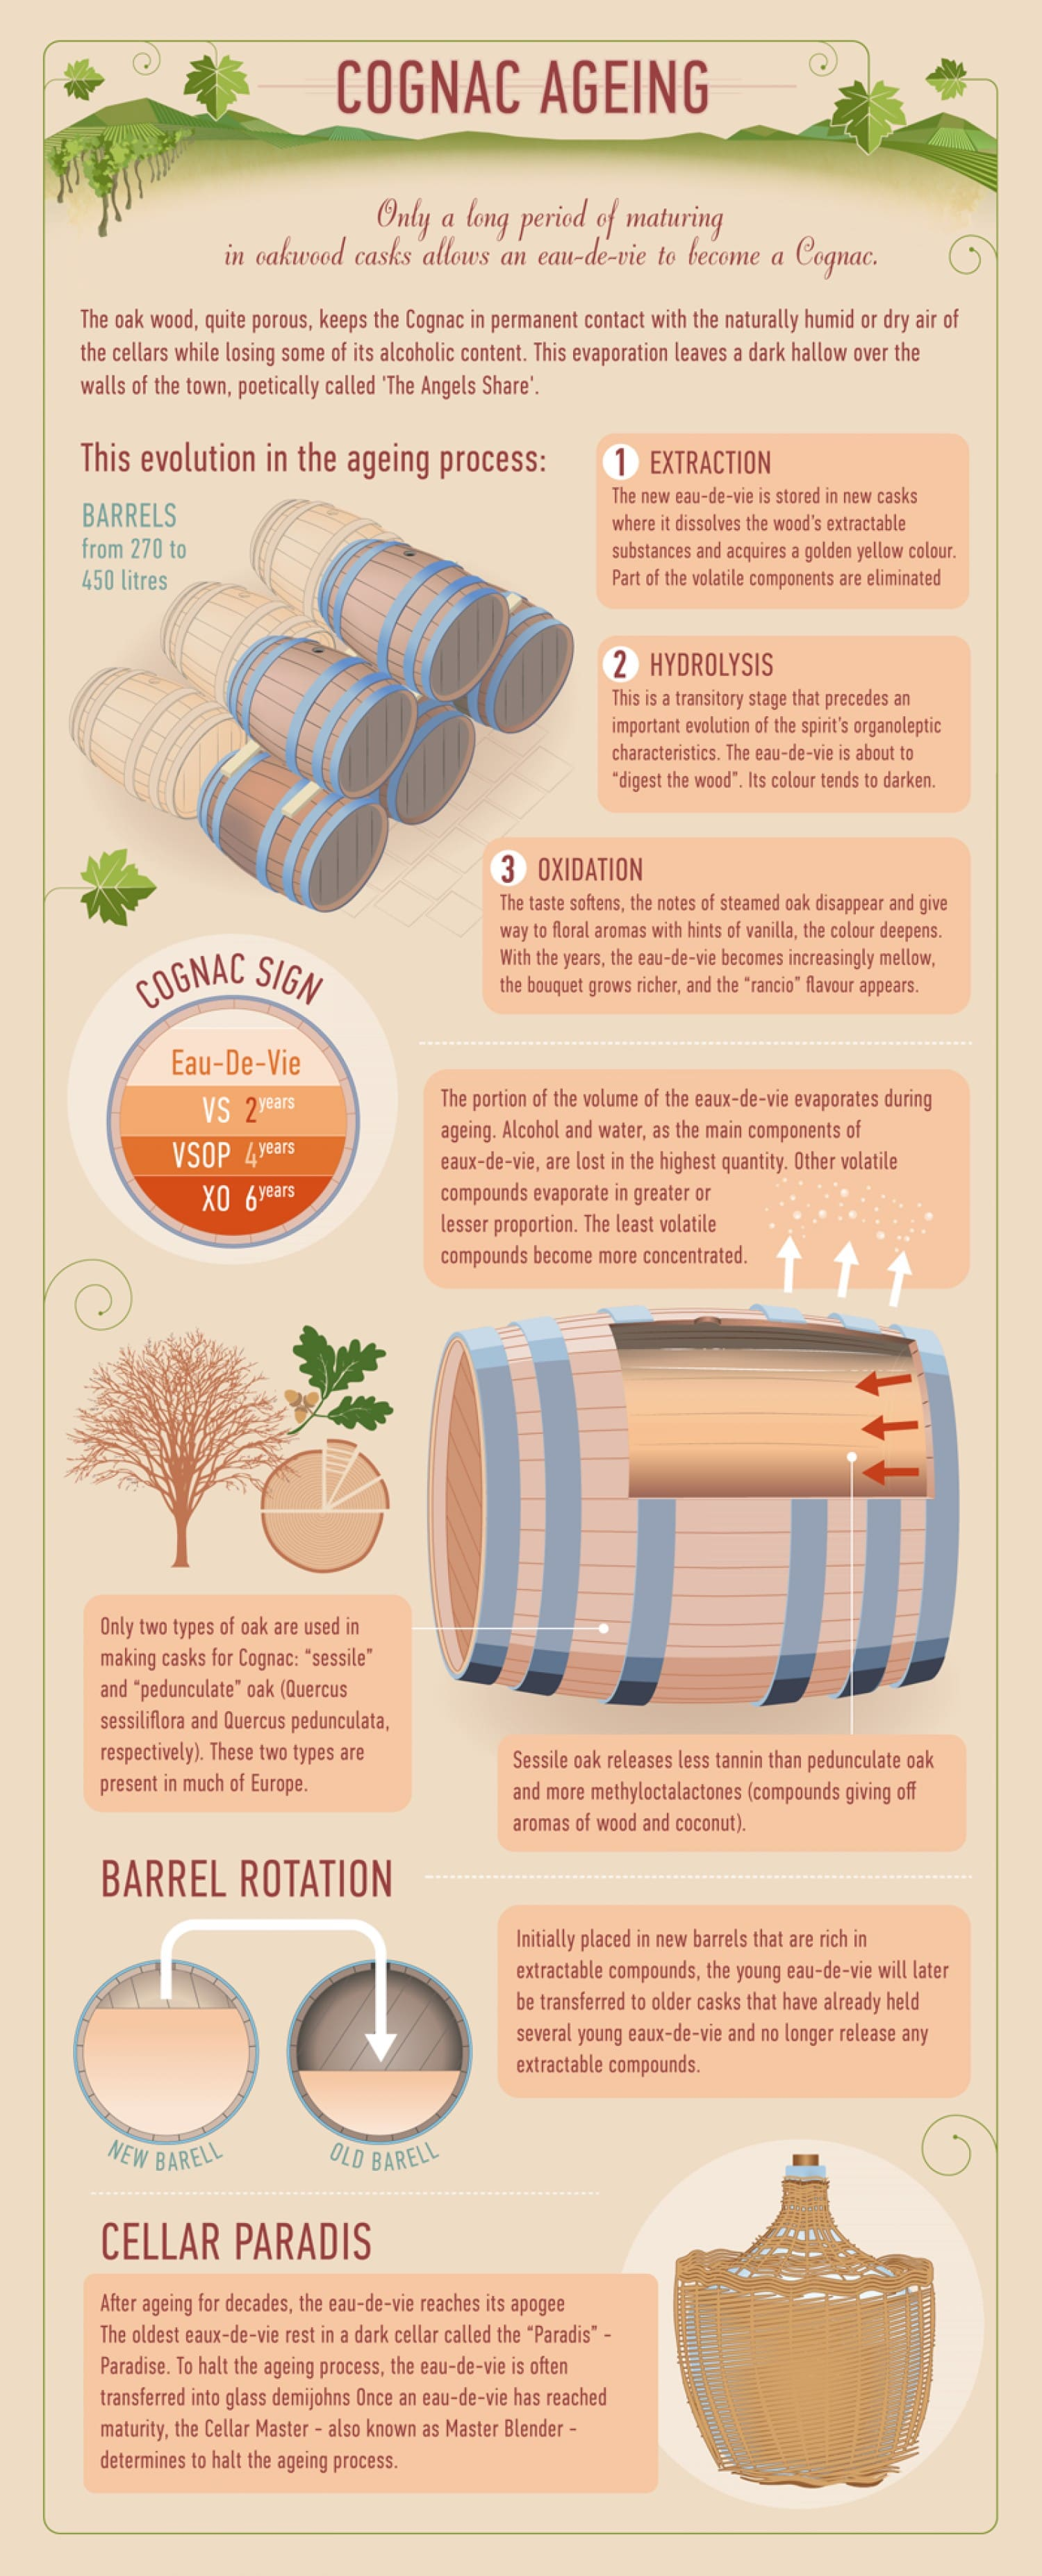 Find Out How Cognac Is Made